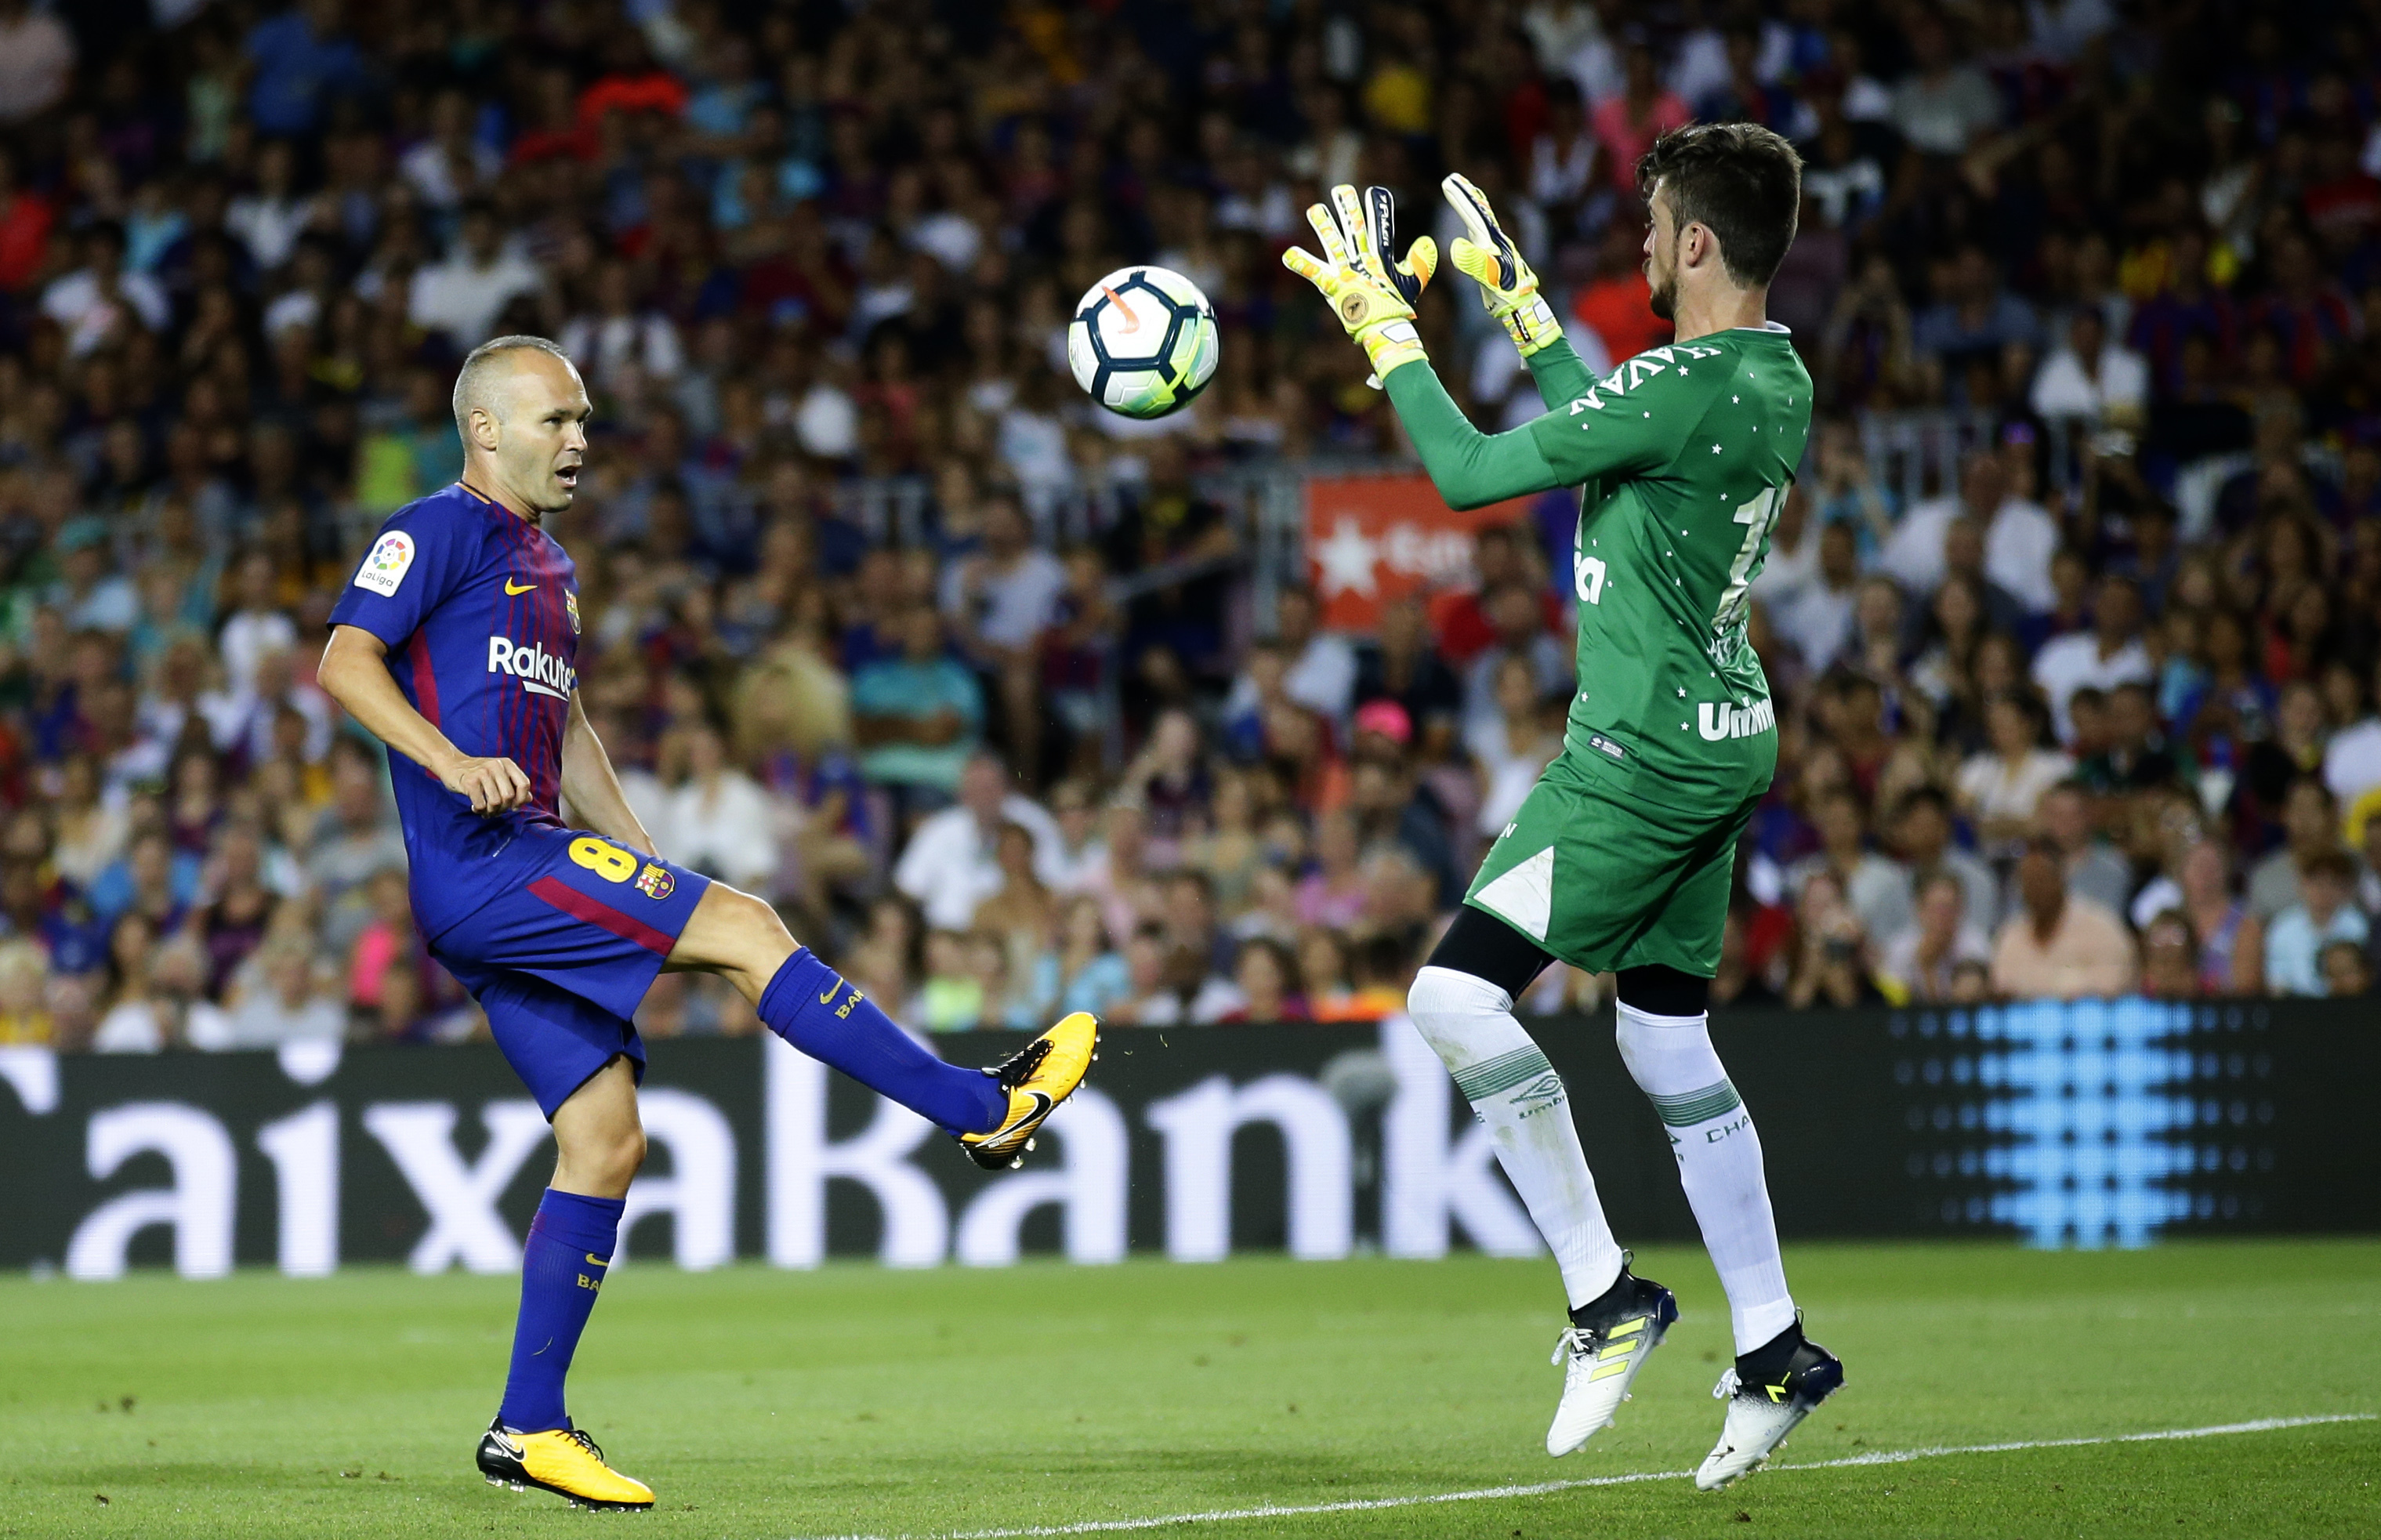 Andres Iniesta during a Barcelona v Chapecoense friendly